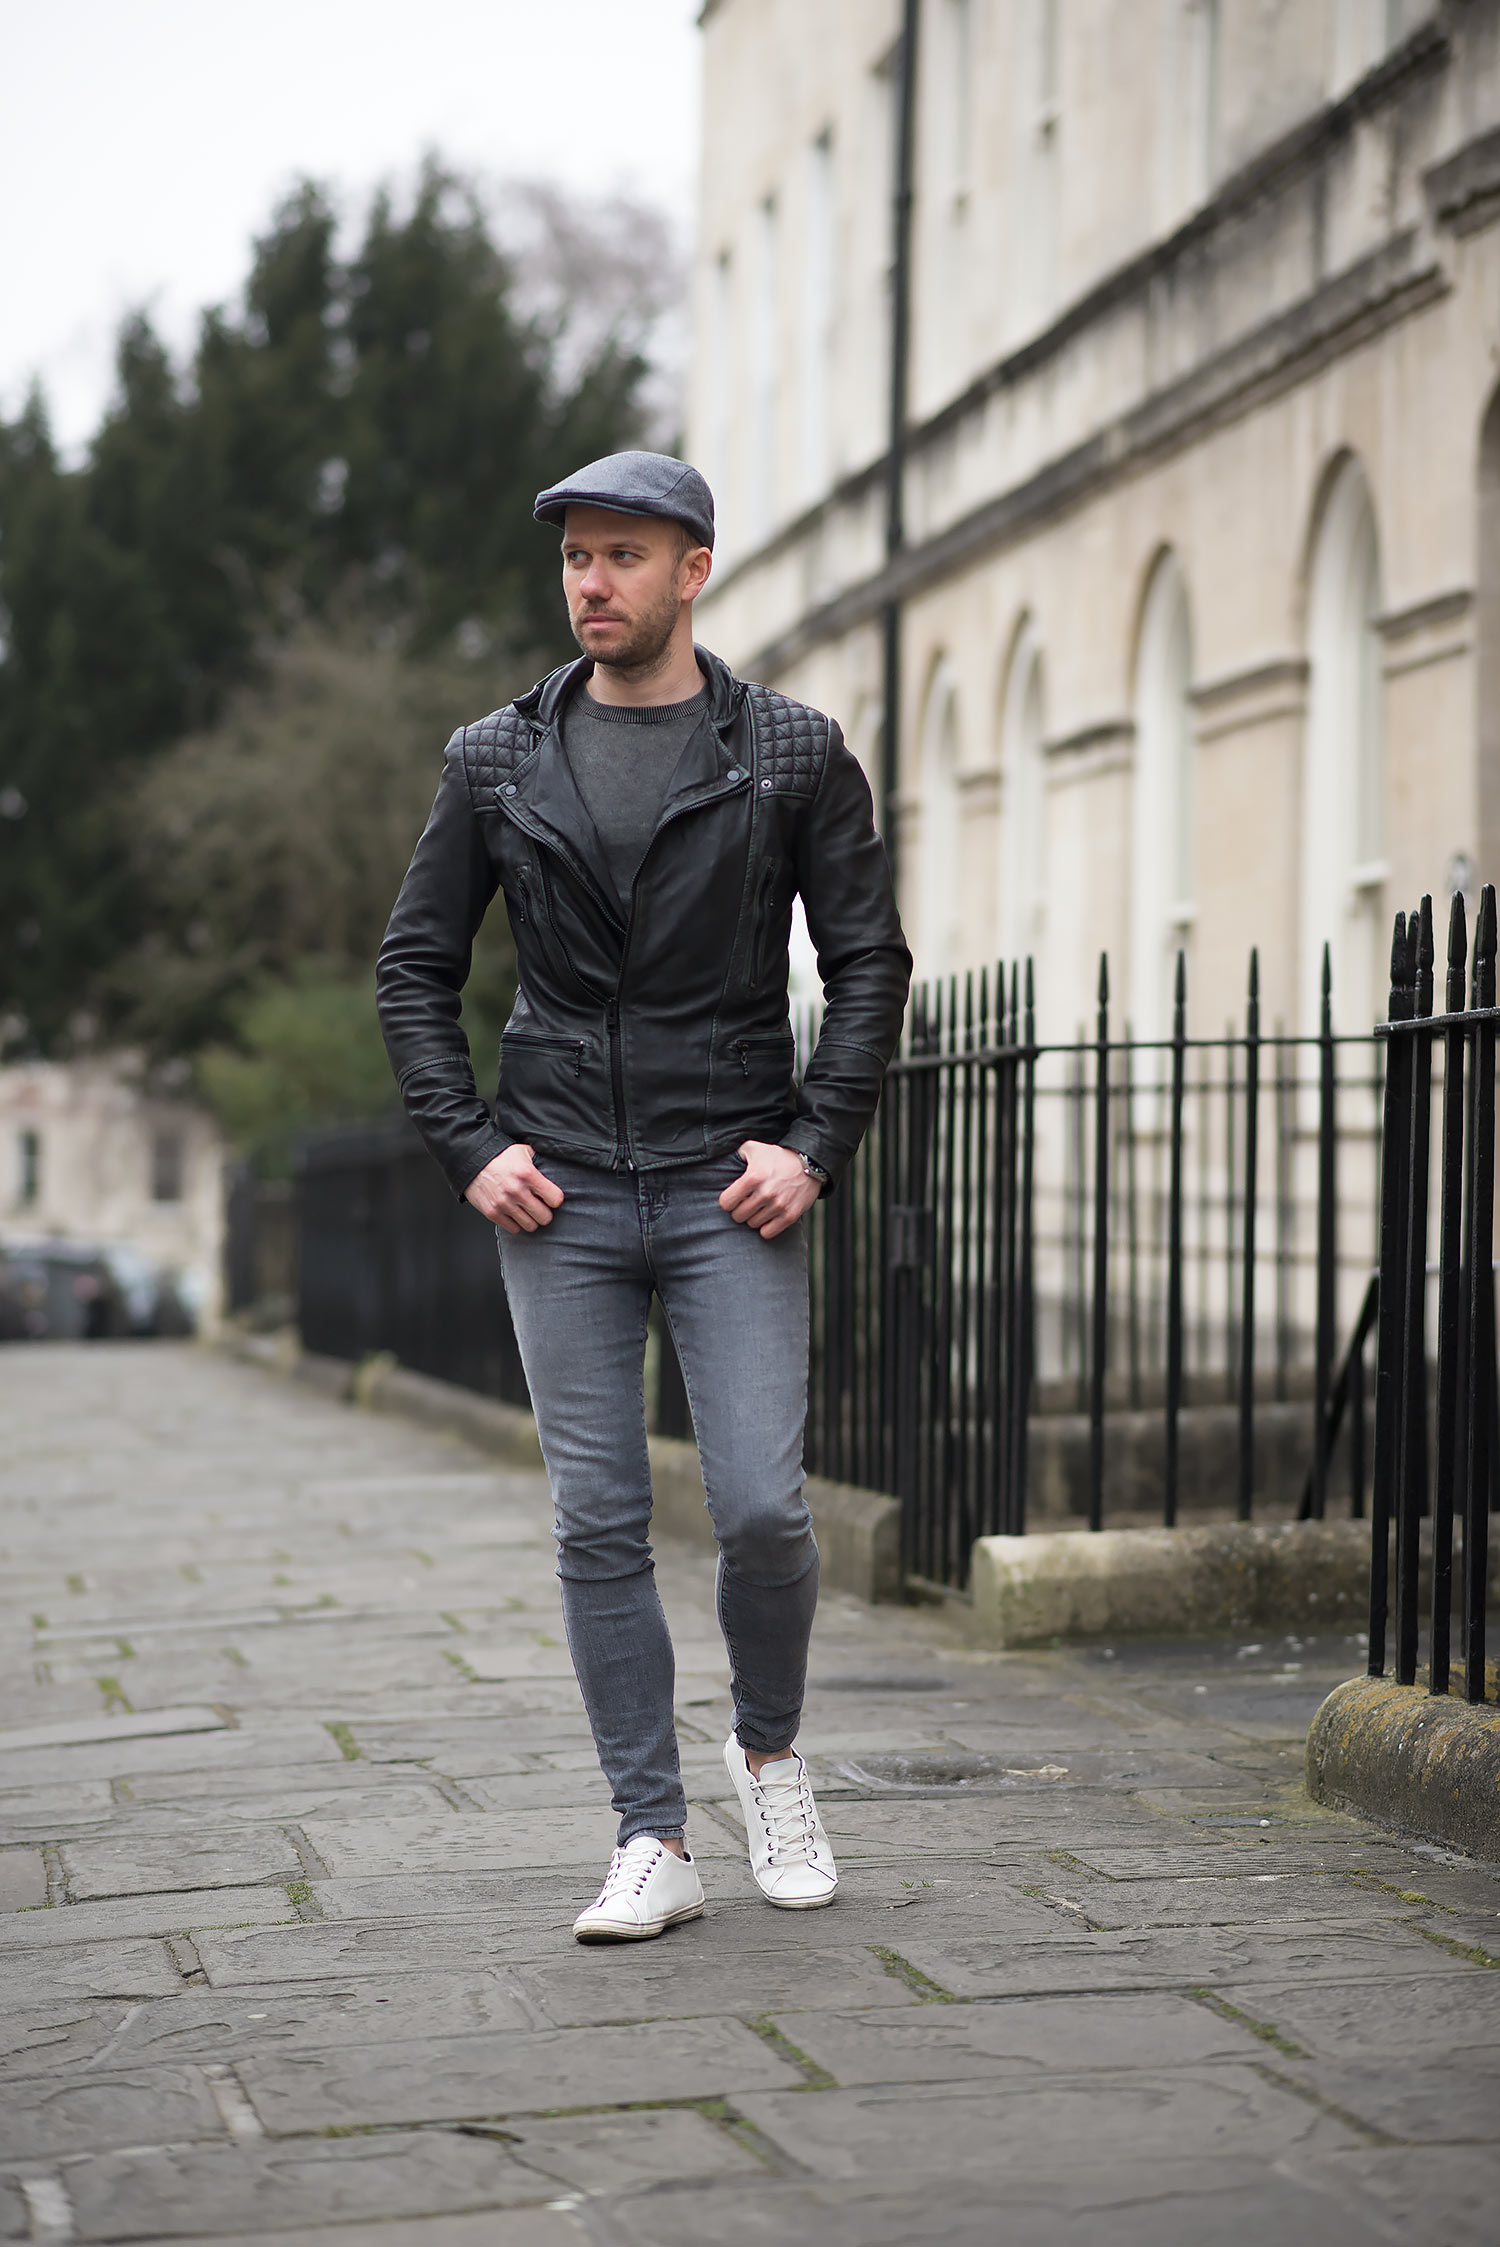 Allsaints Cargo Biker Leather Jacket And Flat Cap Outfit  f29961d94a6